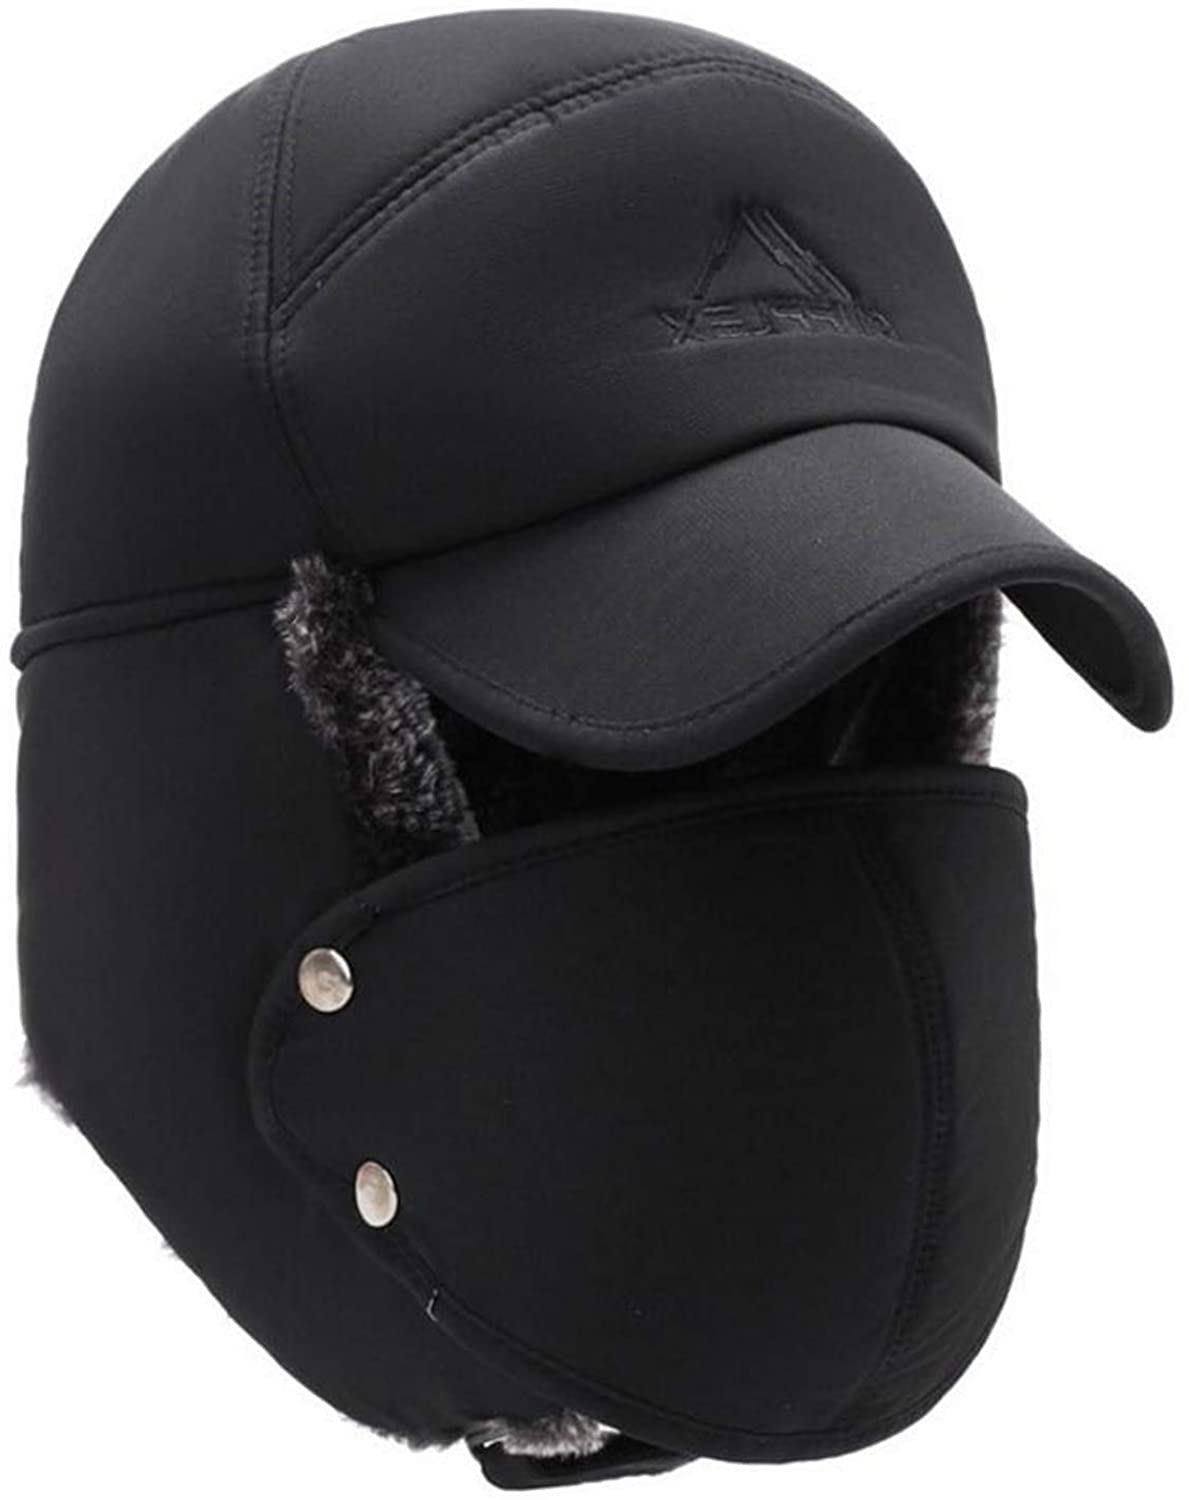 Mens Winter Hats Ear Flaps Bomber Hats with Brim and Face Mask Warm Hat for Men Waterproof Ski Cap,Black